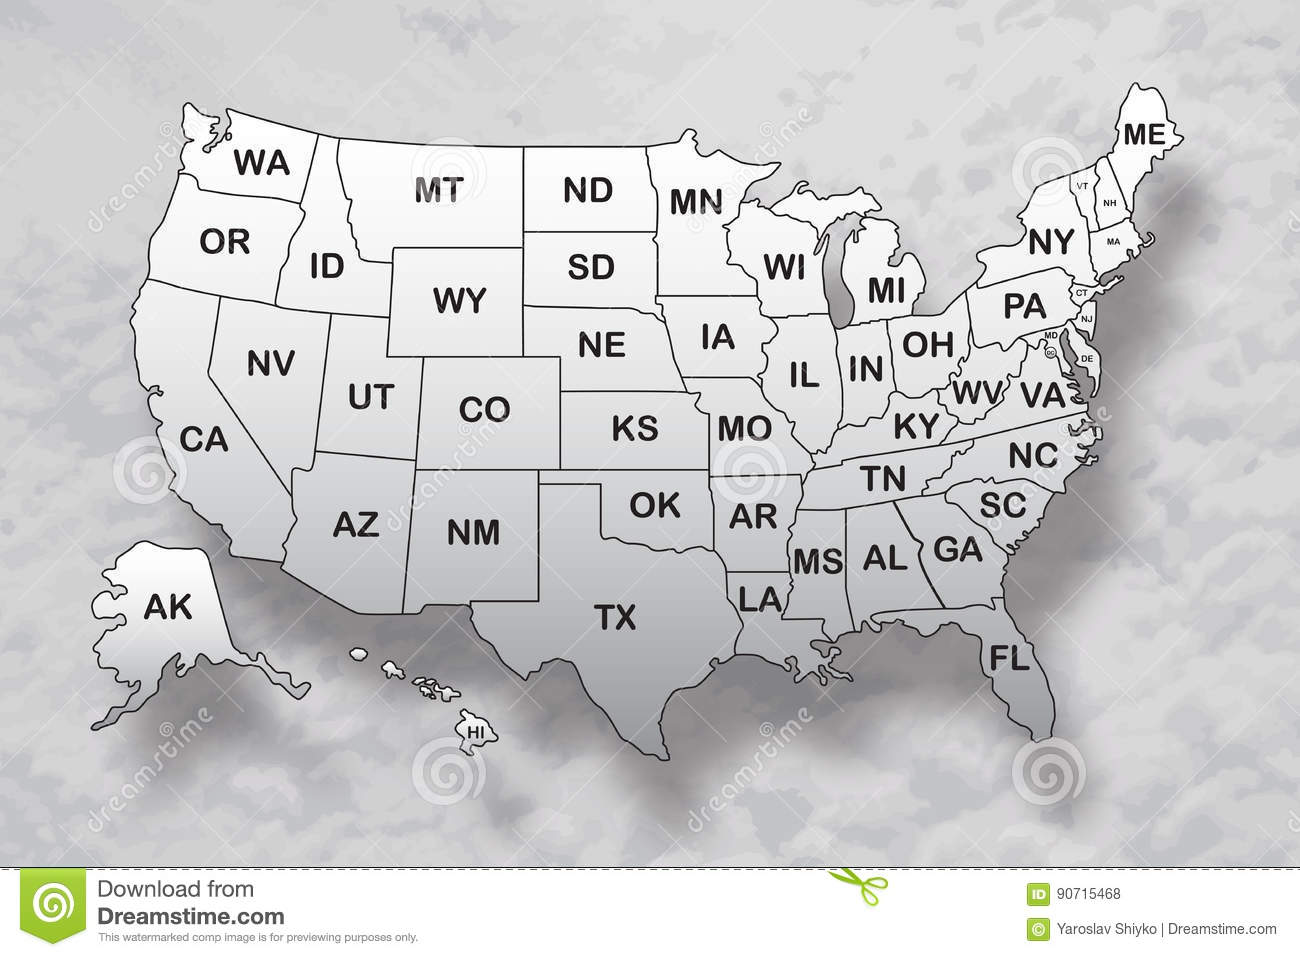 The Map Of The United States With Names.Poster Map Of United States Of America With State Names And Shadow